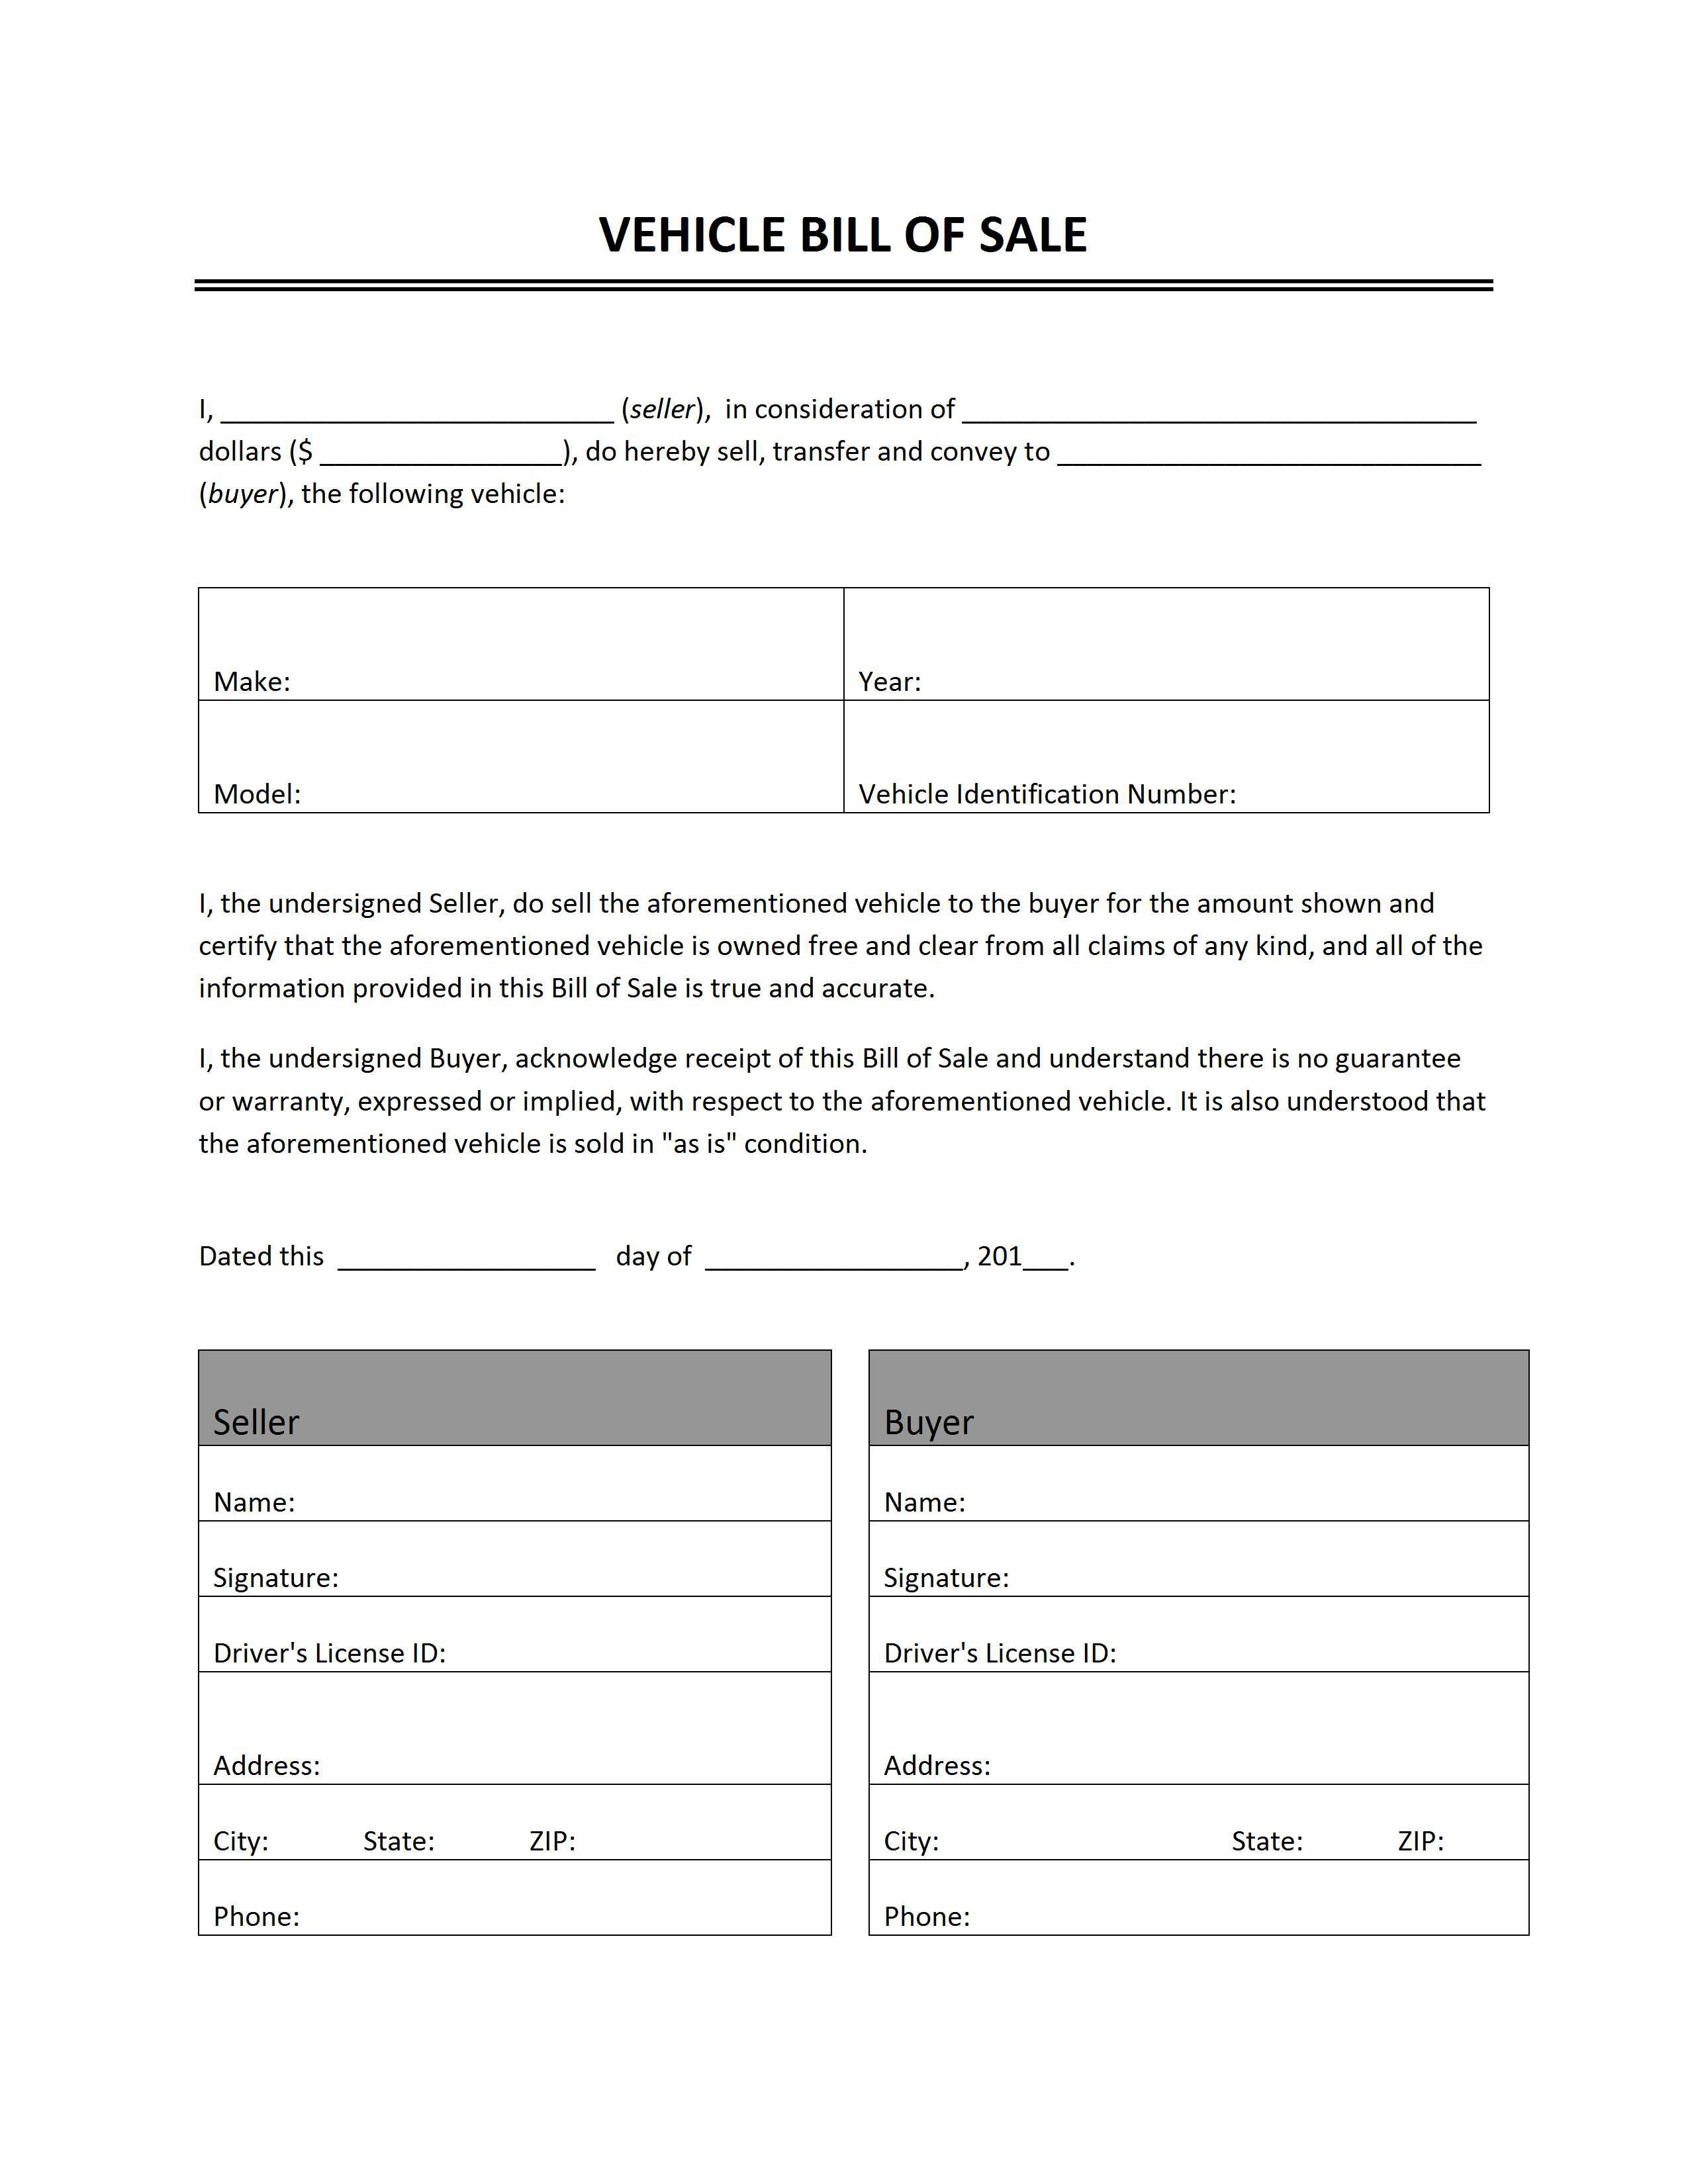 000 Impressive Automobile Bill Of Sale Template High Definition  Word Vehicle Fillable Pdf Texa With NotaryFull